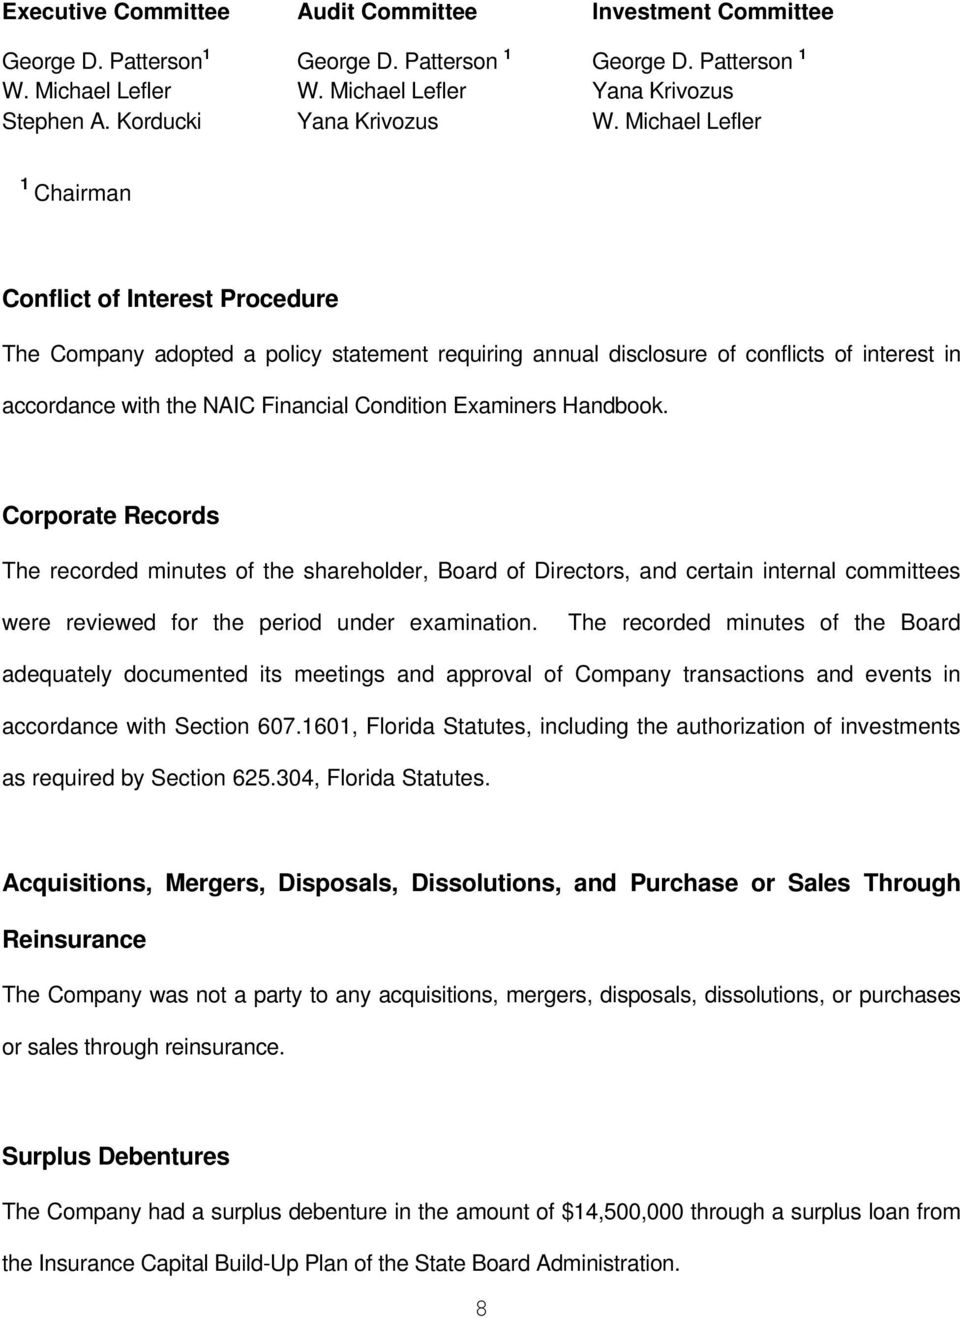 Michael Lefler 1 Chairman Conflict of Interest Procedure The Company adopted a policy statement requiring annual disclosure of conflicts of interest in accordance with the NAIC Financial Condition